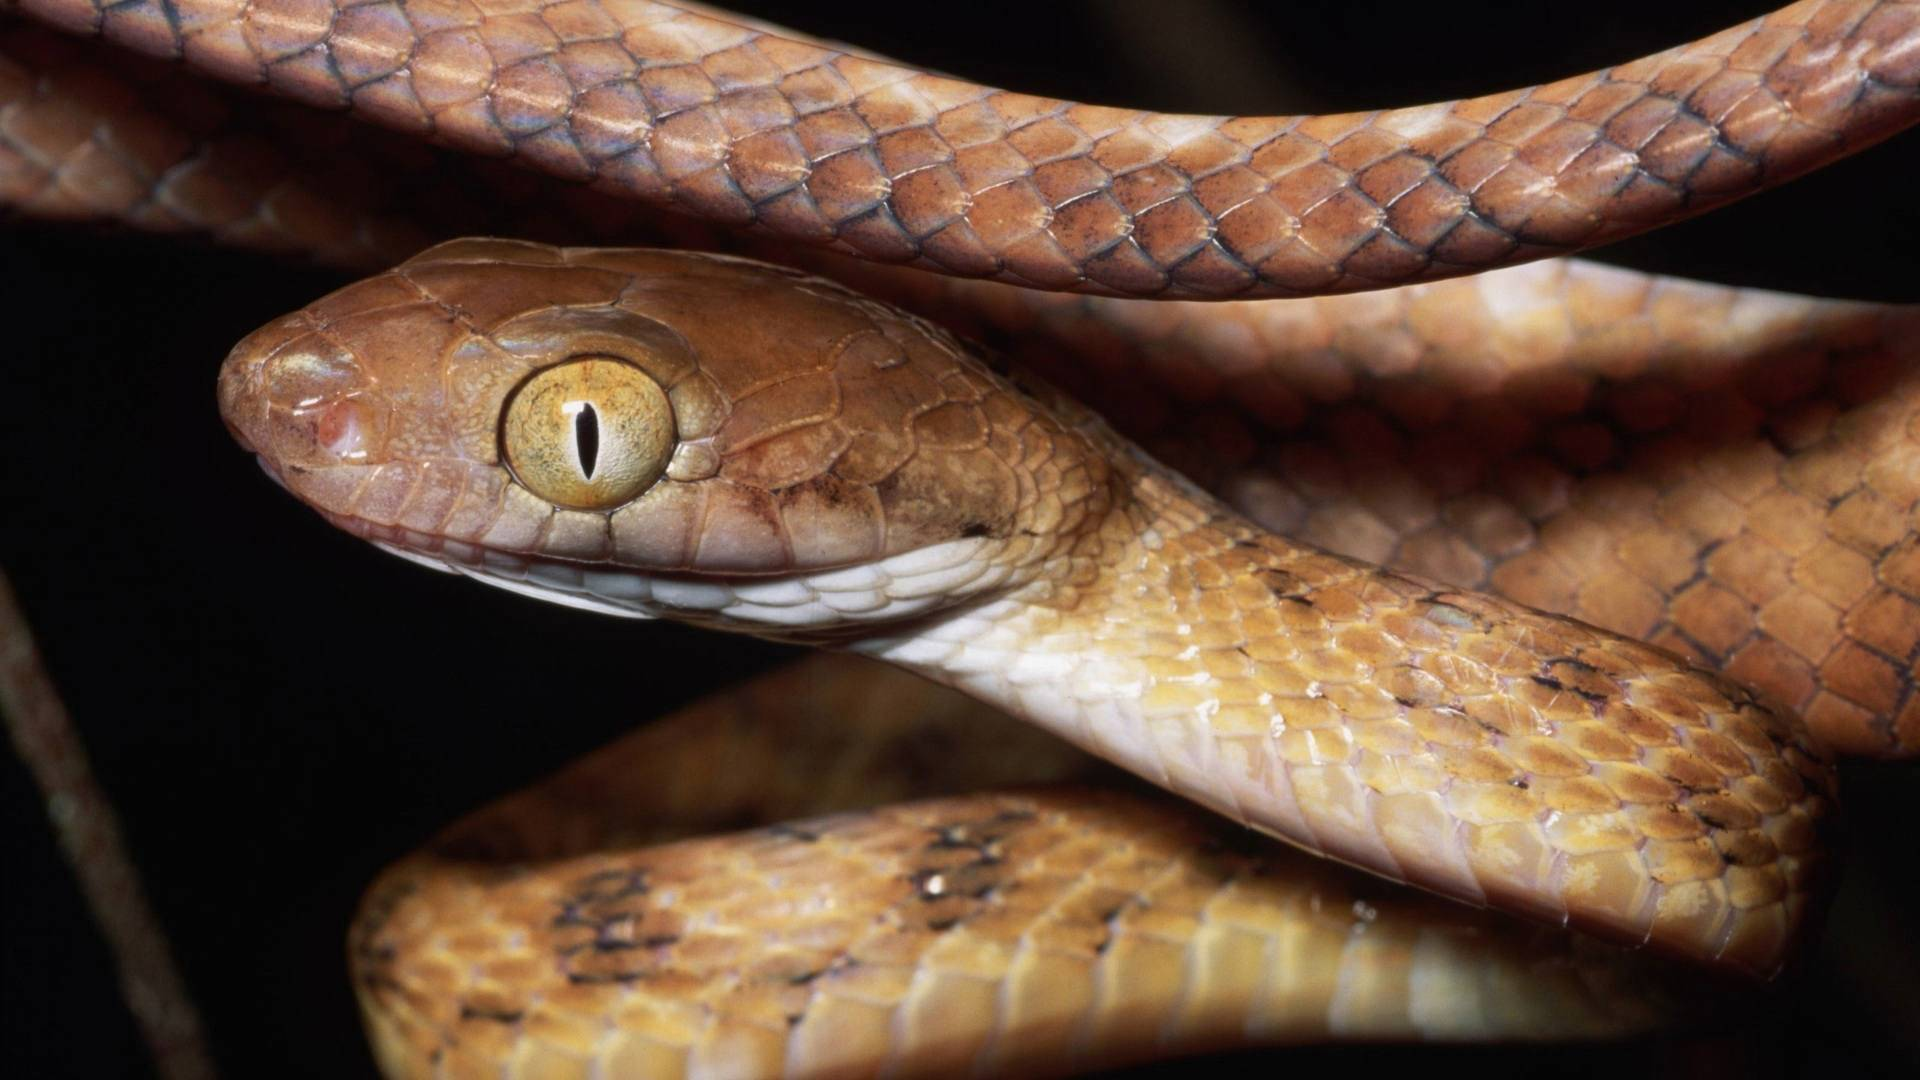 Snake Hd Wallpapers 2